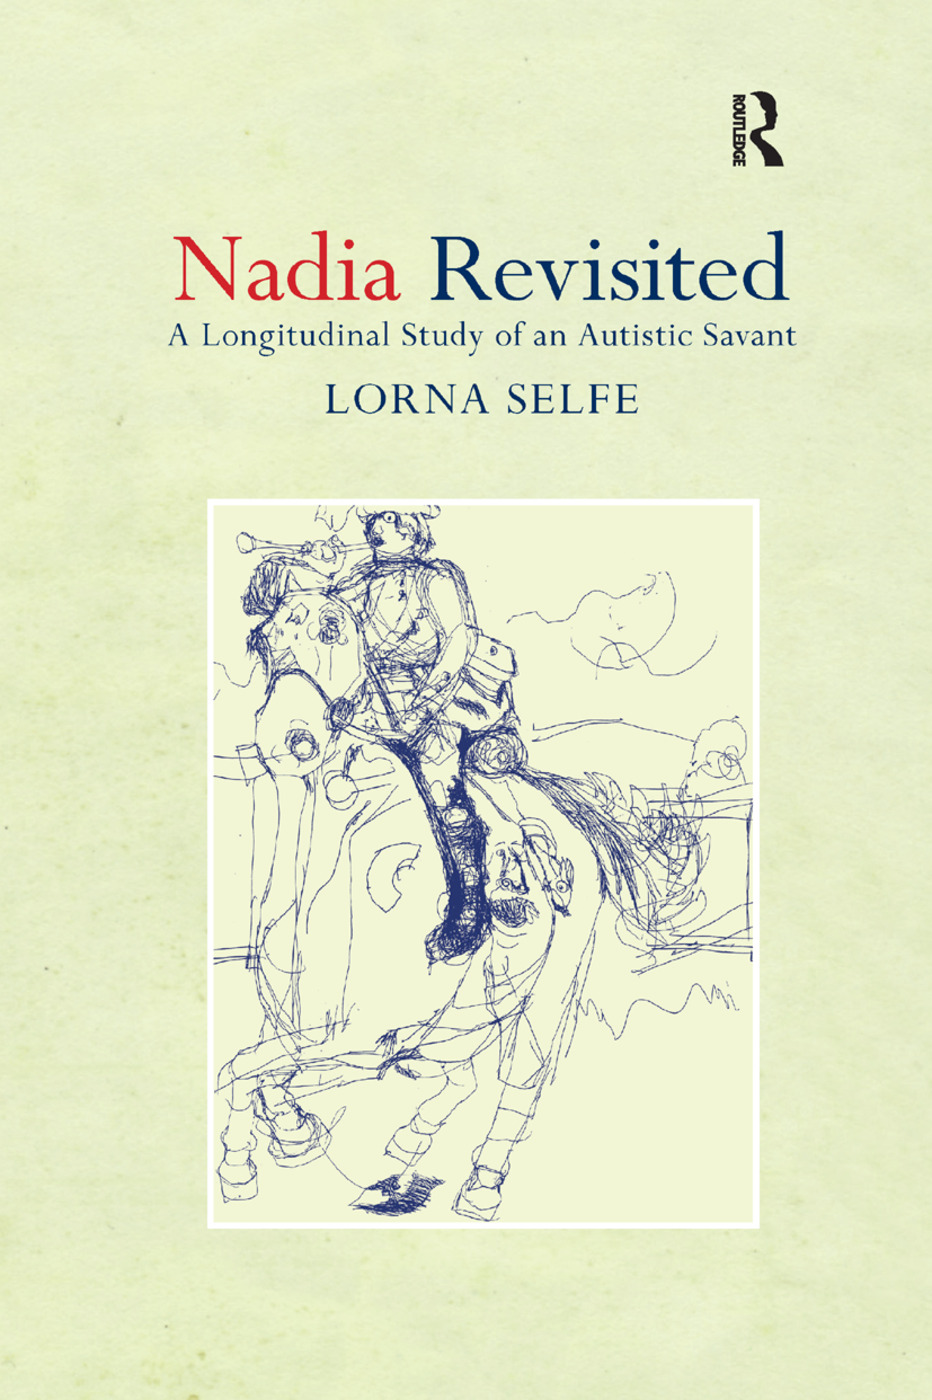 Nadia Revisited: A Longitudinal Study of an Autistic Savant book cover